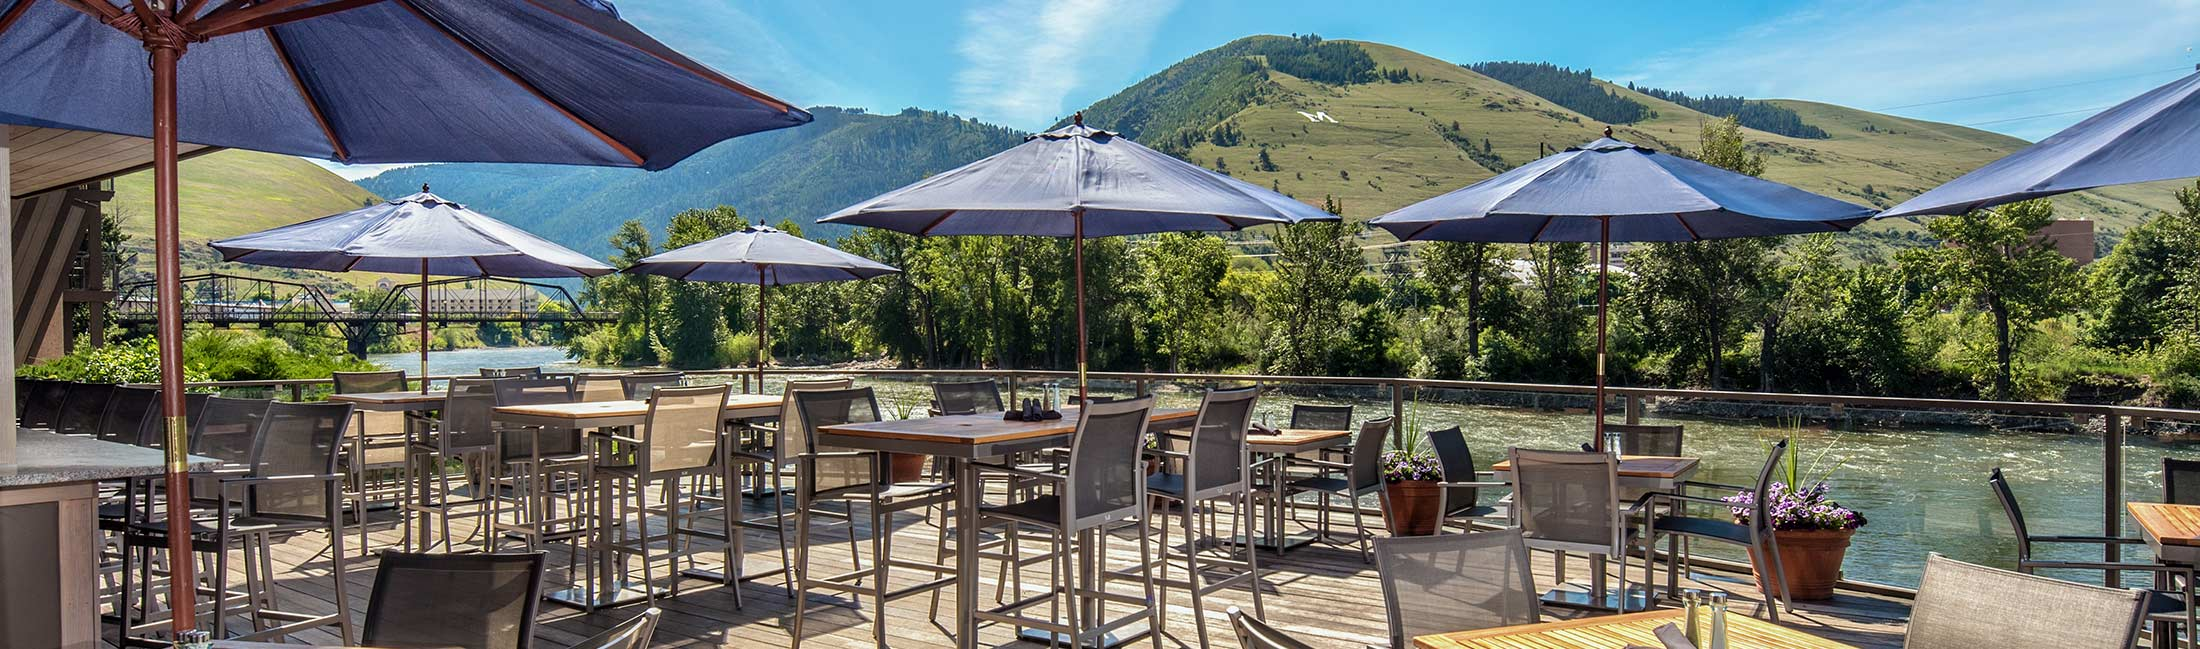 Grab Pizza and Drinks Overlooking the Clark Fork River